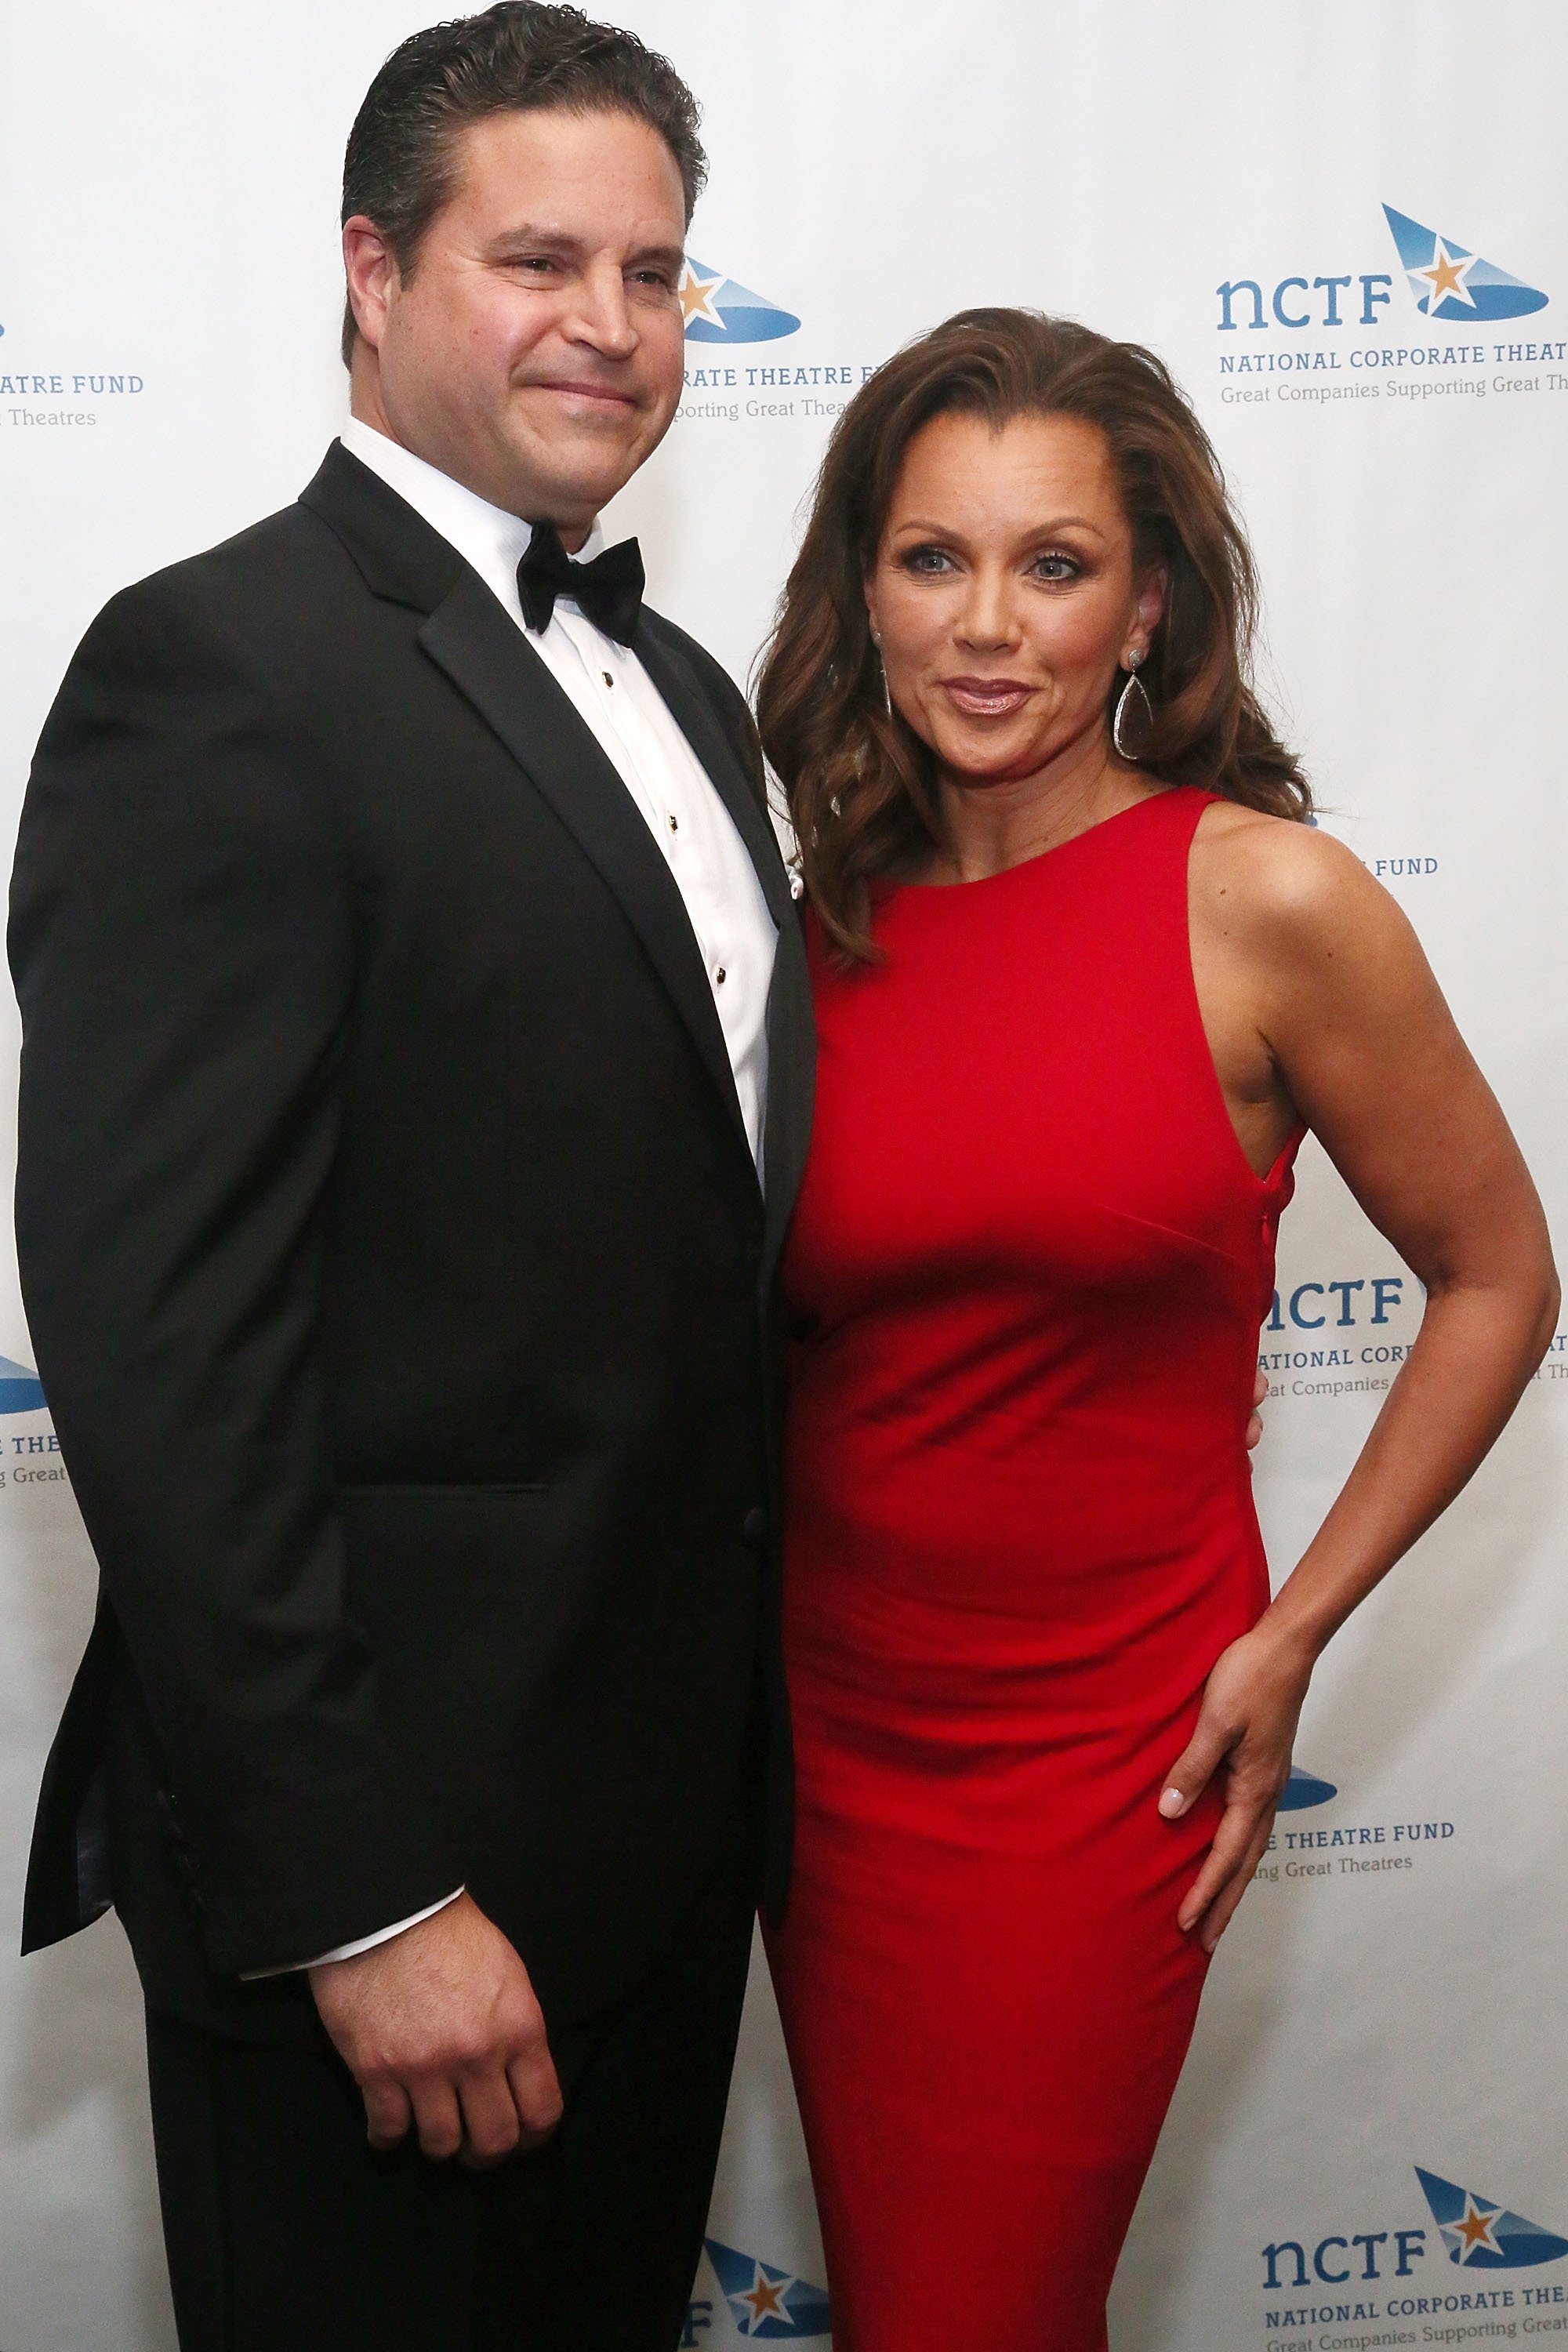 Jim Skrip and actress Vanessa Williams, wearing a dress designed by Azadeh attend the National Corporate Theatre Fund 2013 Chairman's Award Gala at The Pierre Hotel on April 29, 2013 | Photo: Getty Images